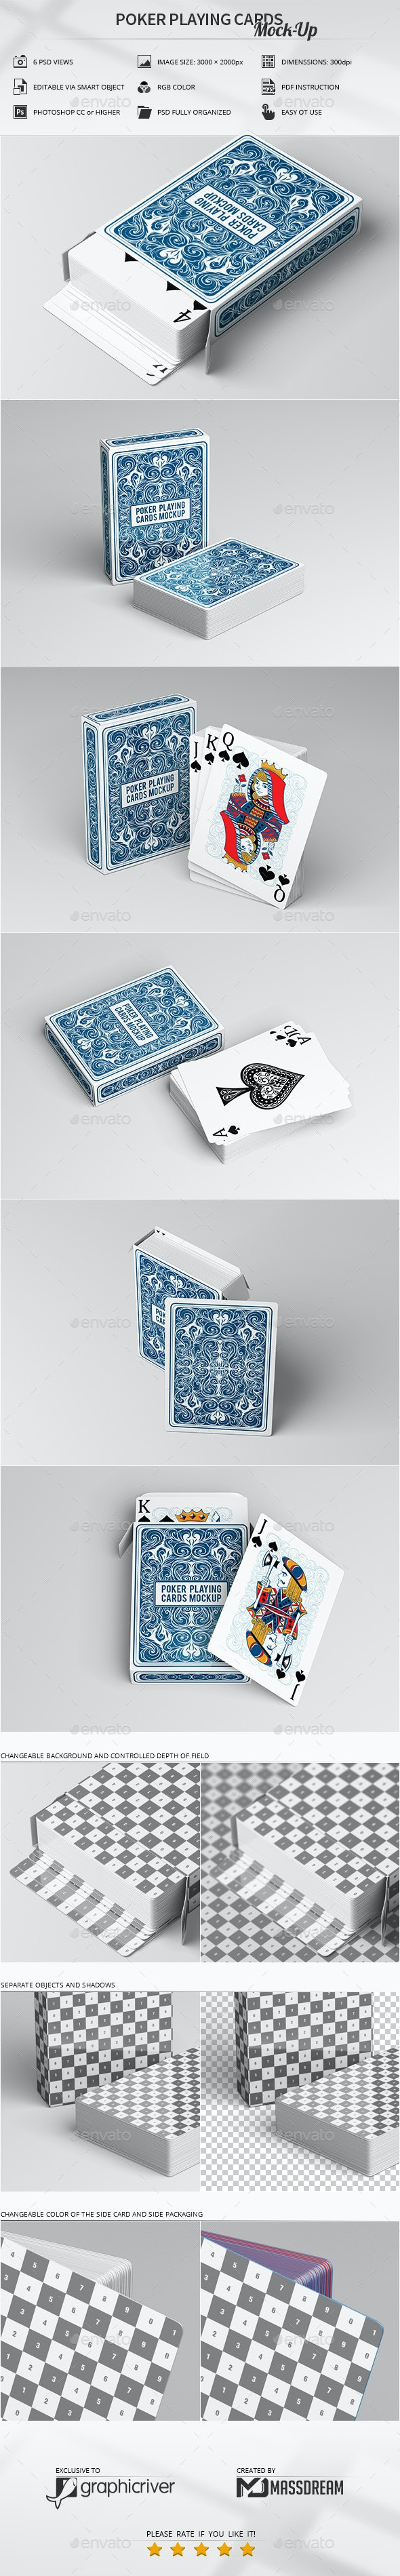 Poker Playing Cards Mock-Up - Product Mock-Ups Graphics